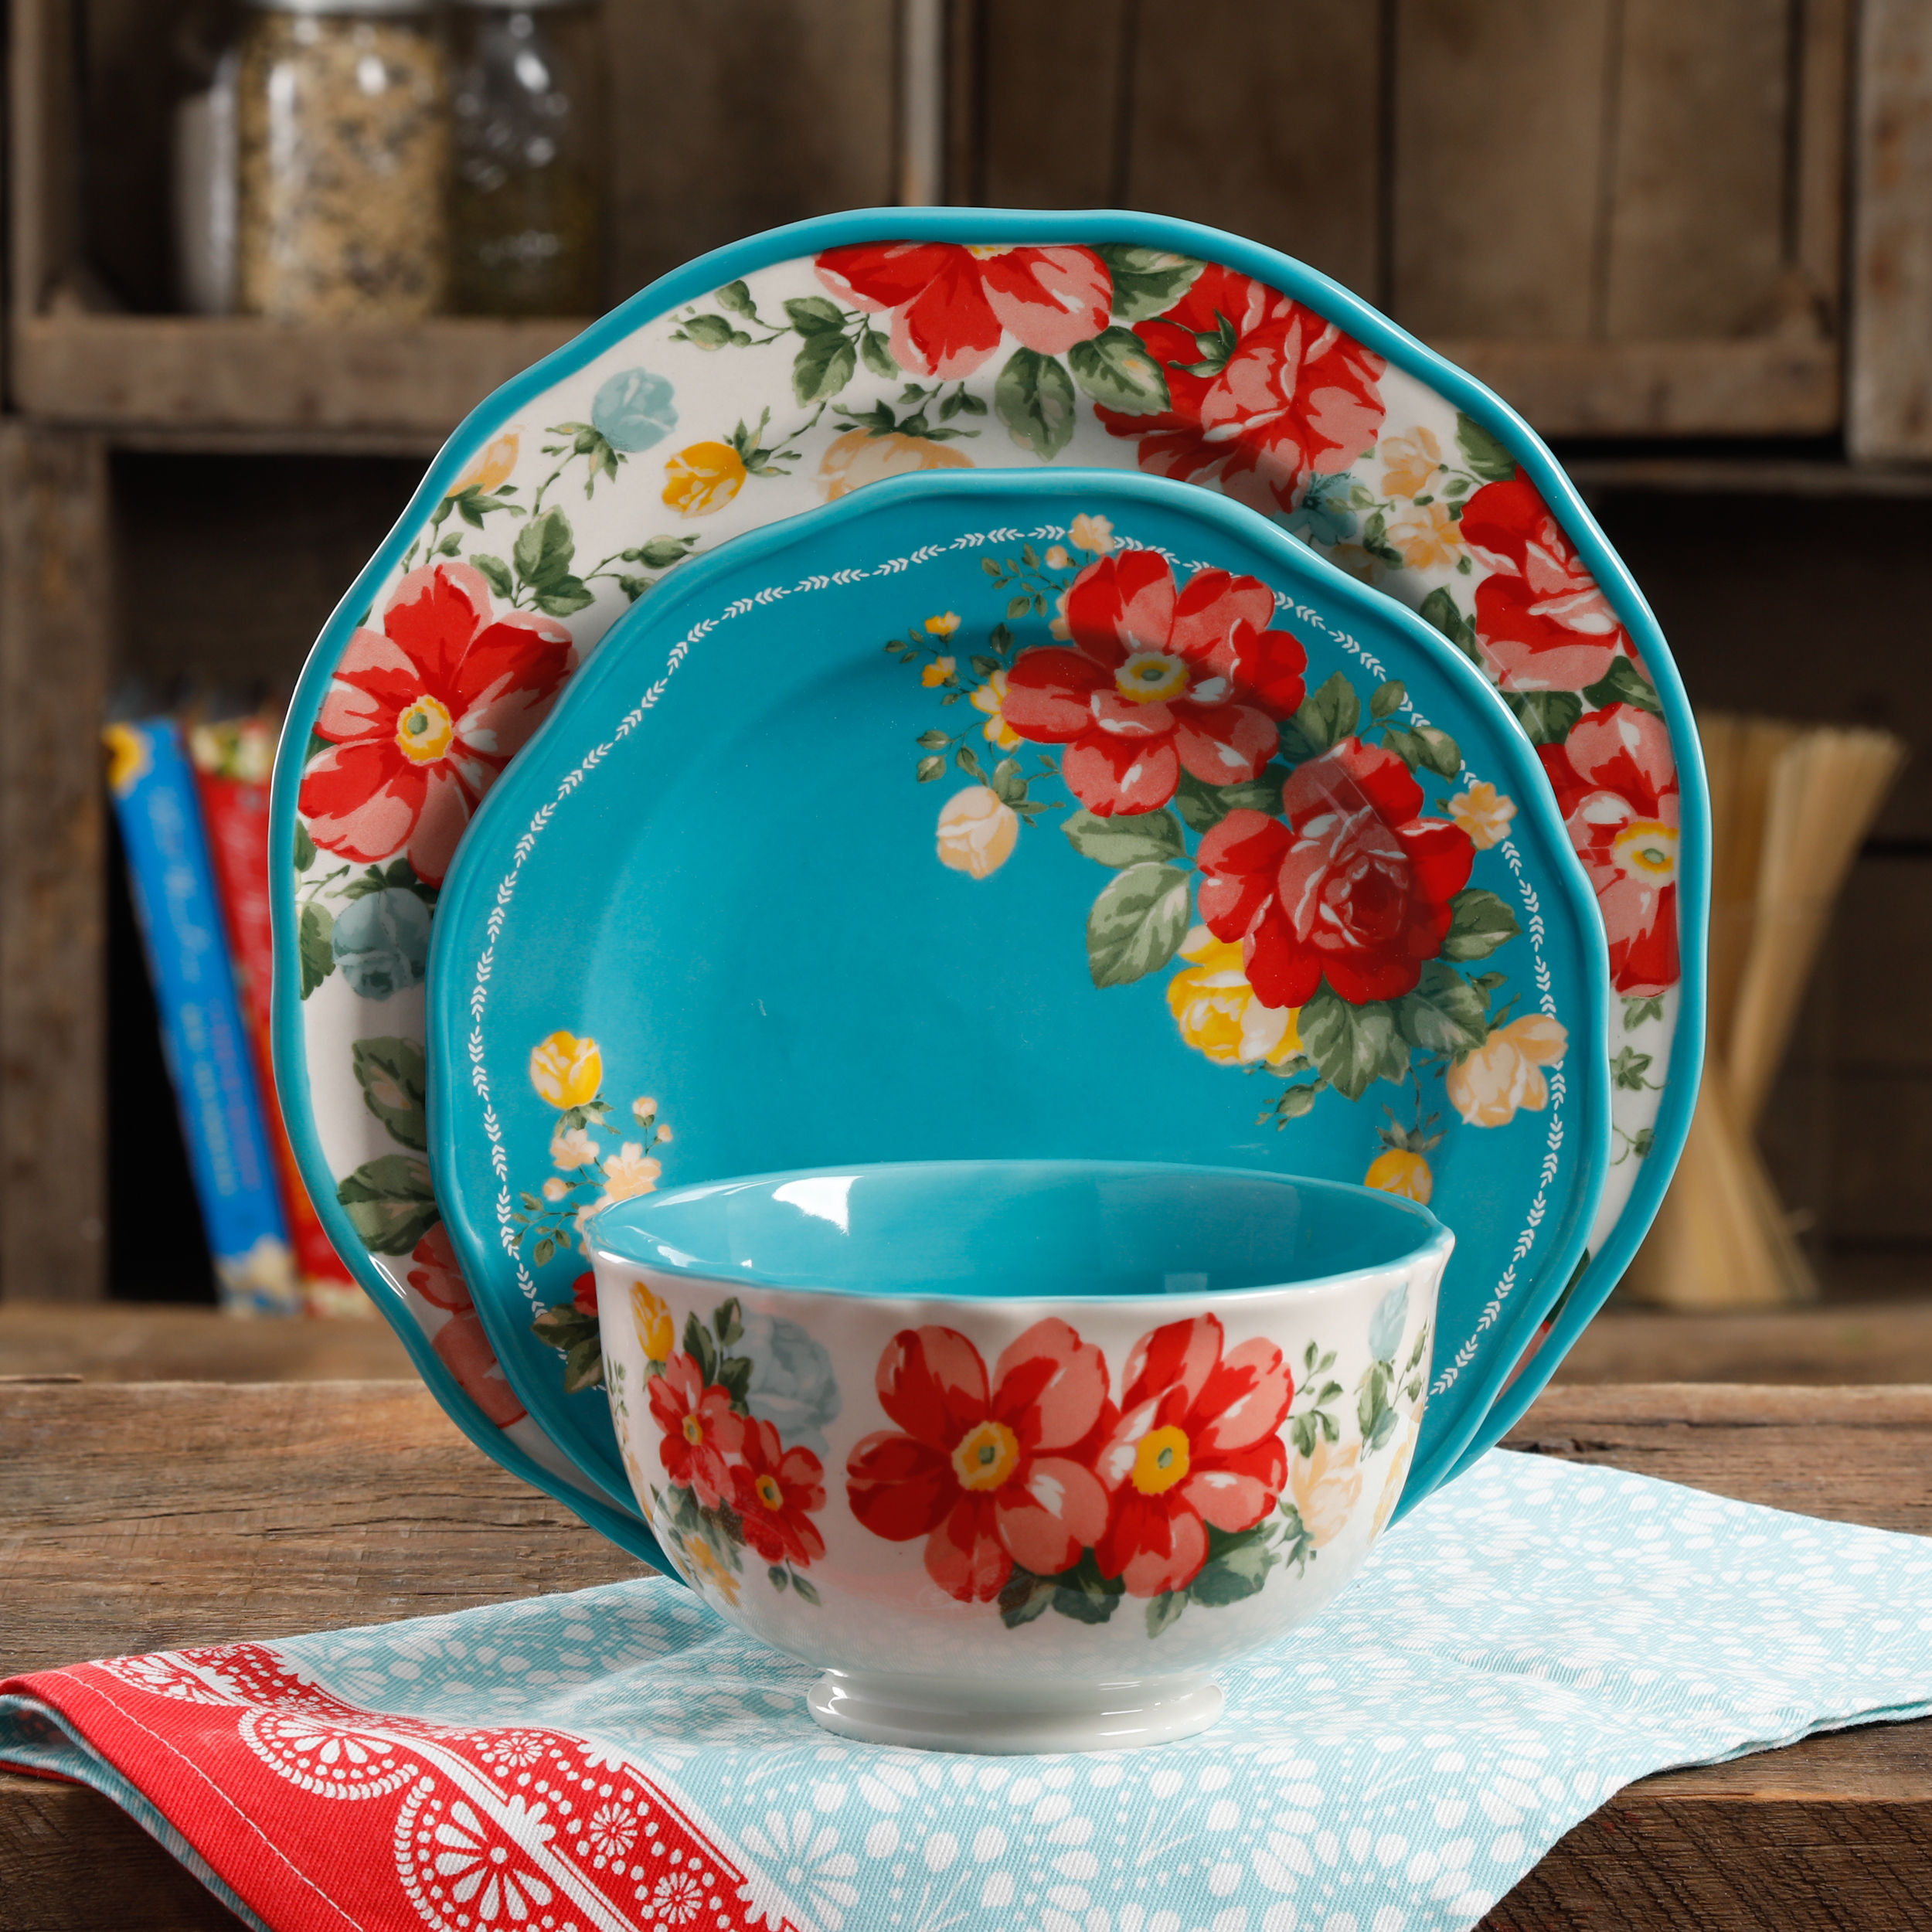 The Pioneer Woman Vintage Floral 12 Piece Dinnerware Set